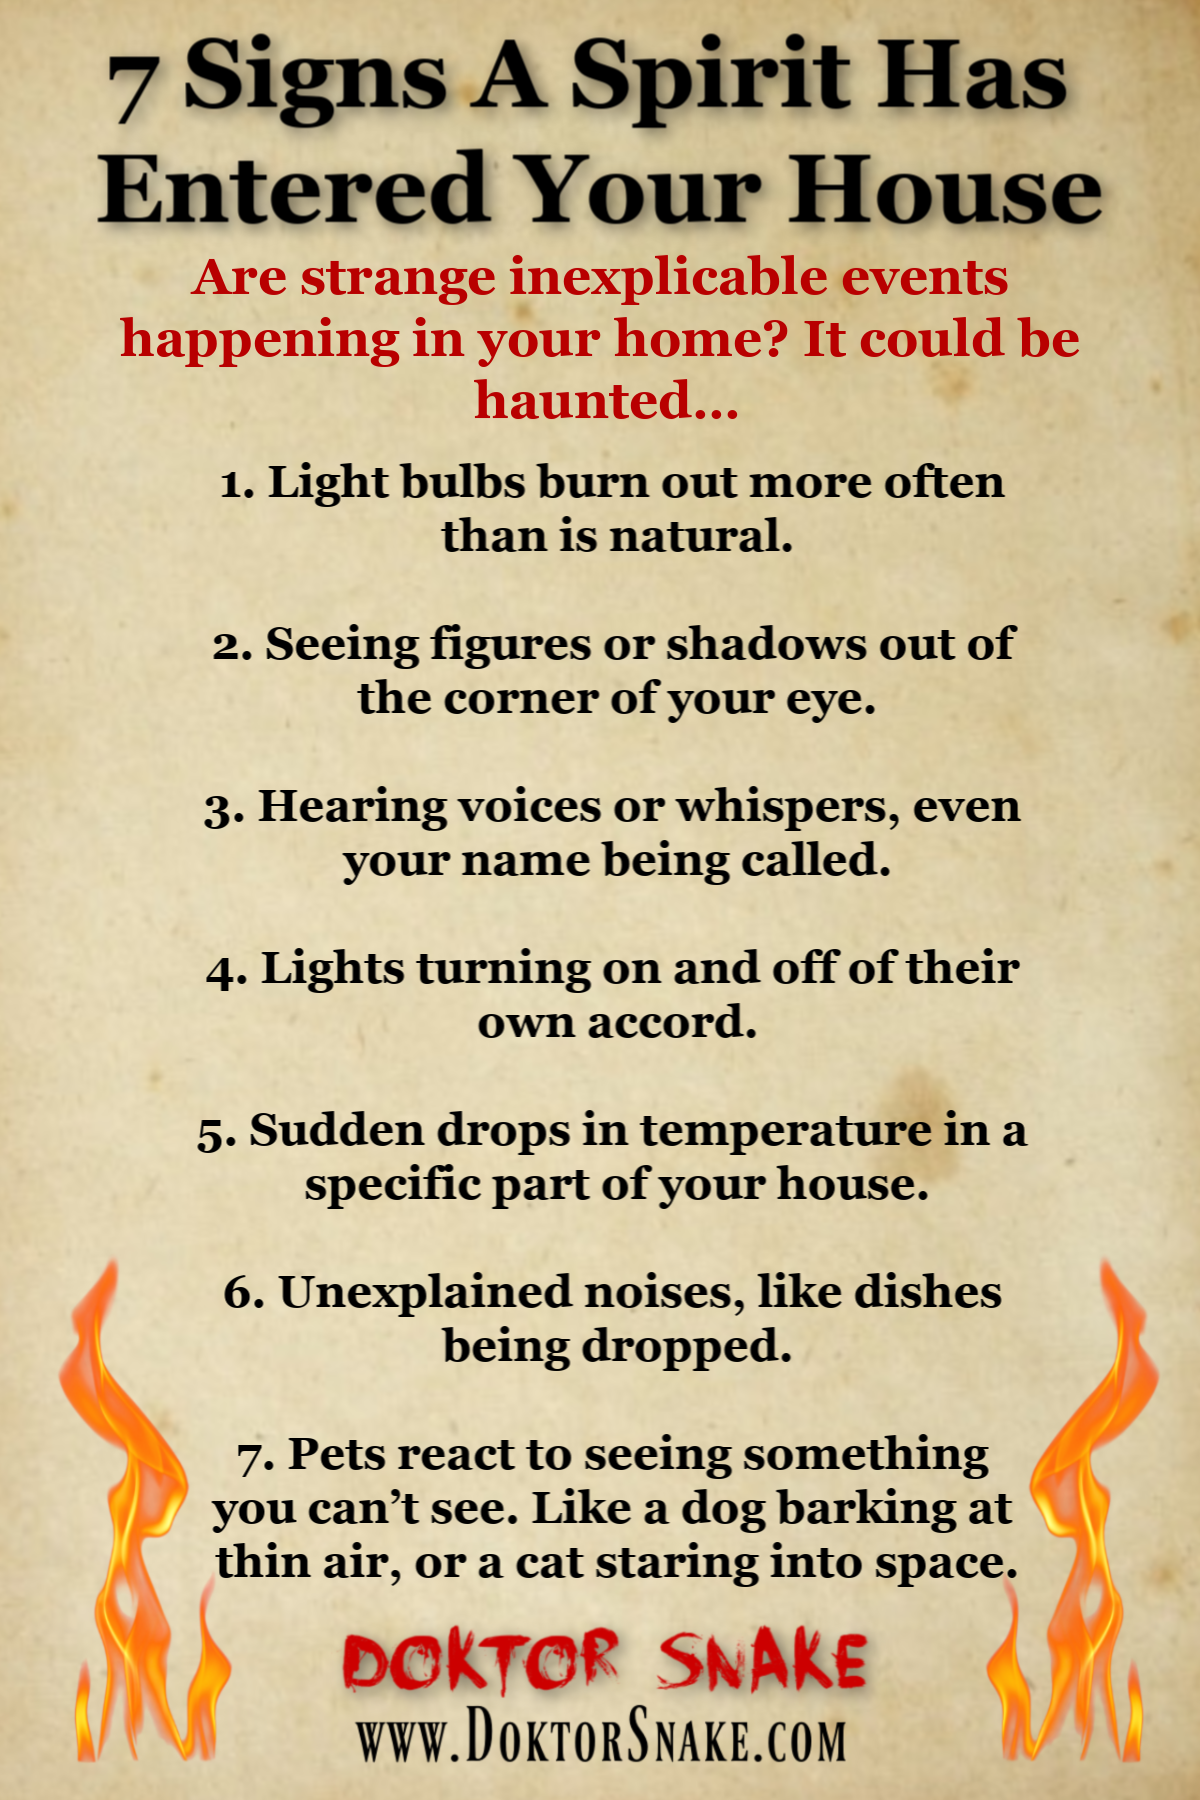 Is your house haunted? 7 signs a spirit has entere